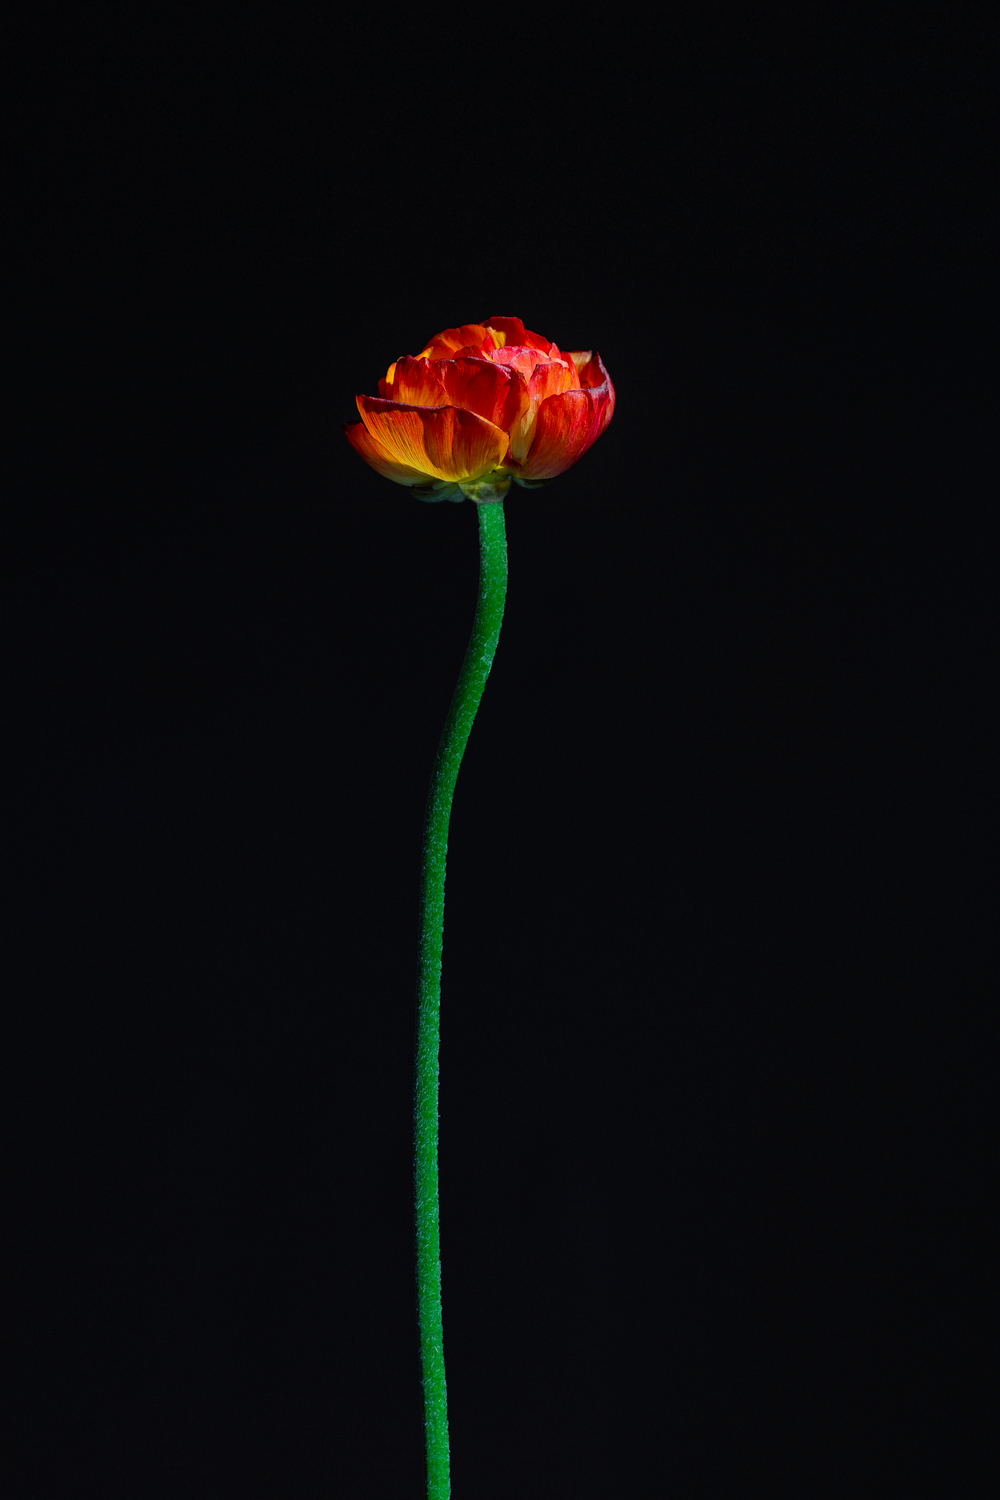 minimalist photography of red-petaled flower